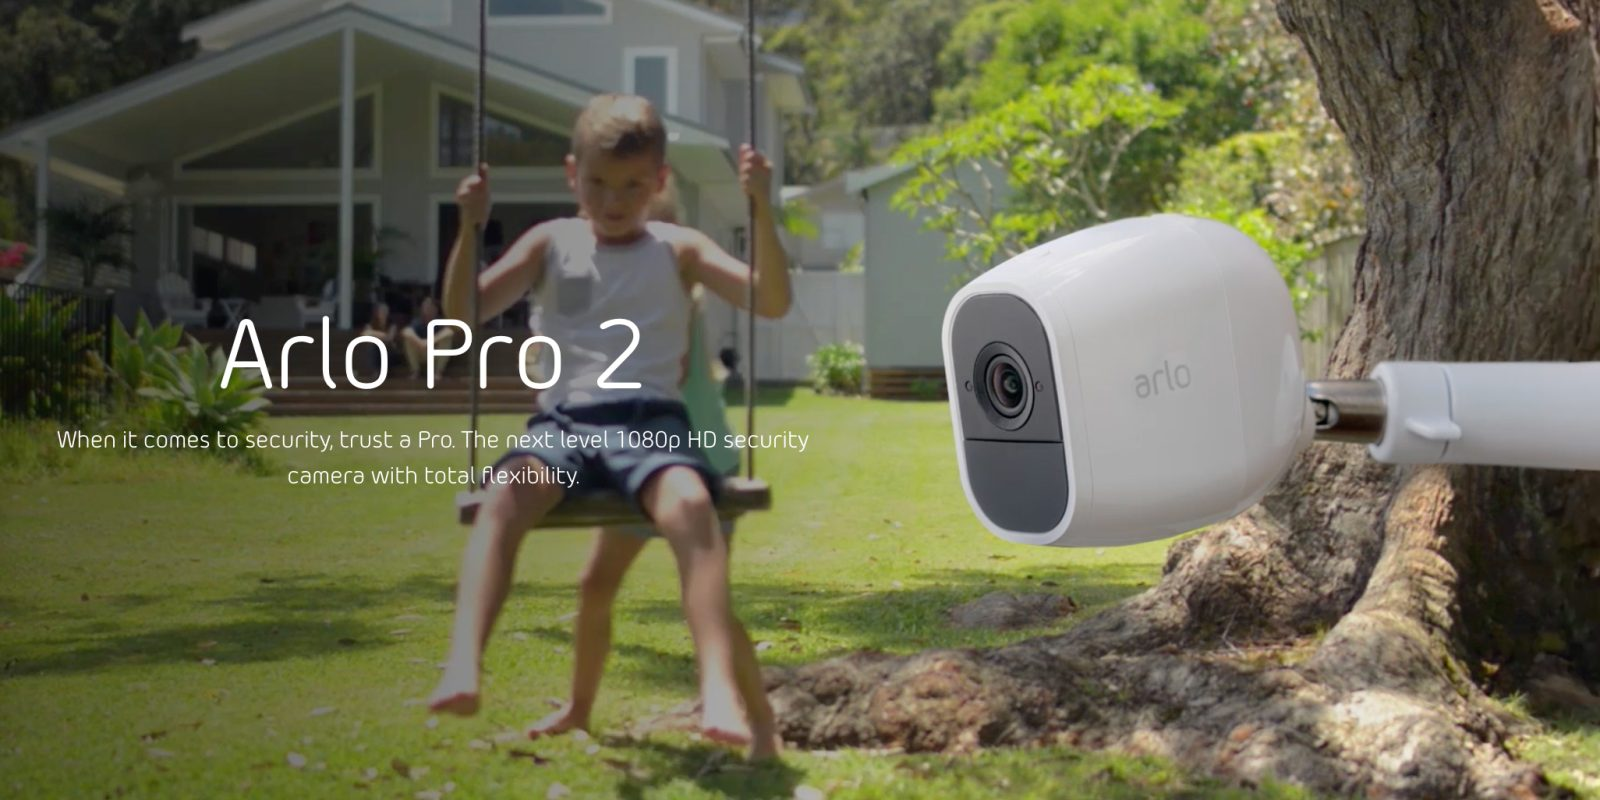 Pick up a 2-pack of Arlo Pro 2 security cameras for $50 off